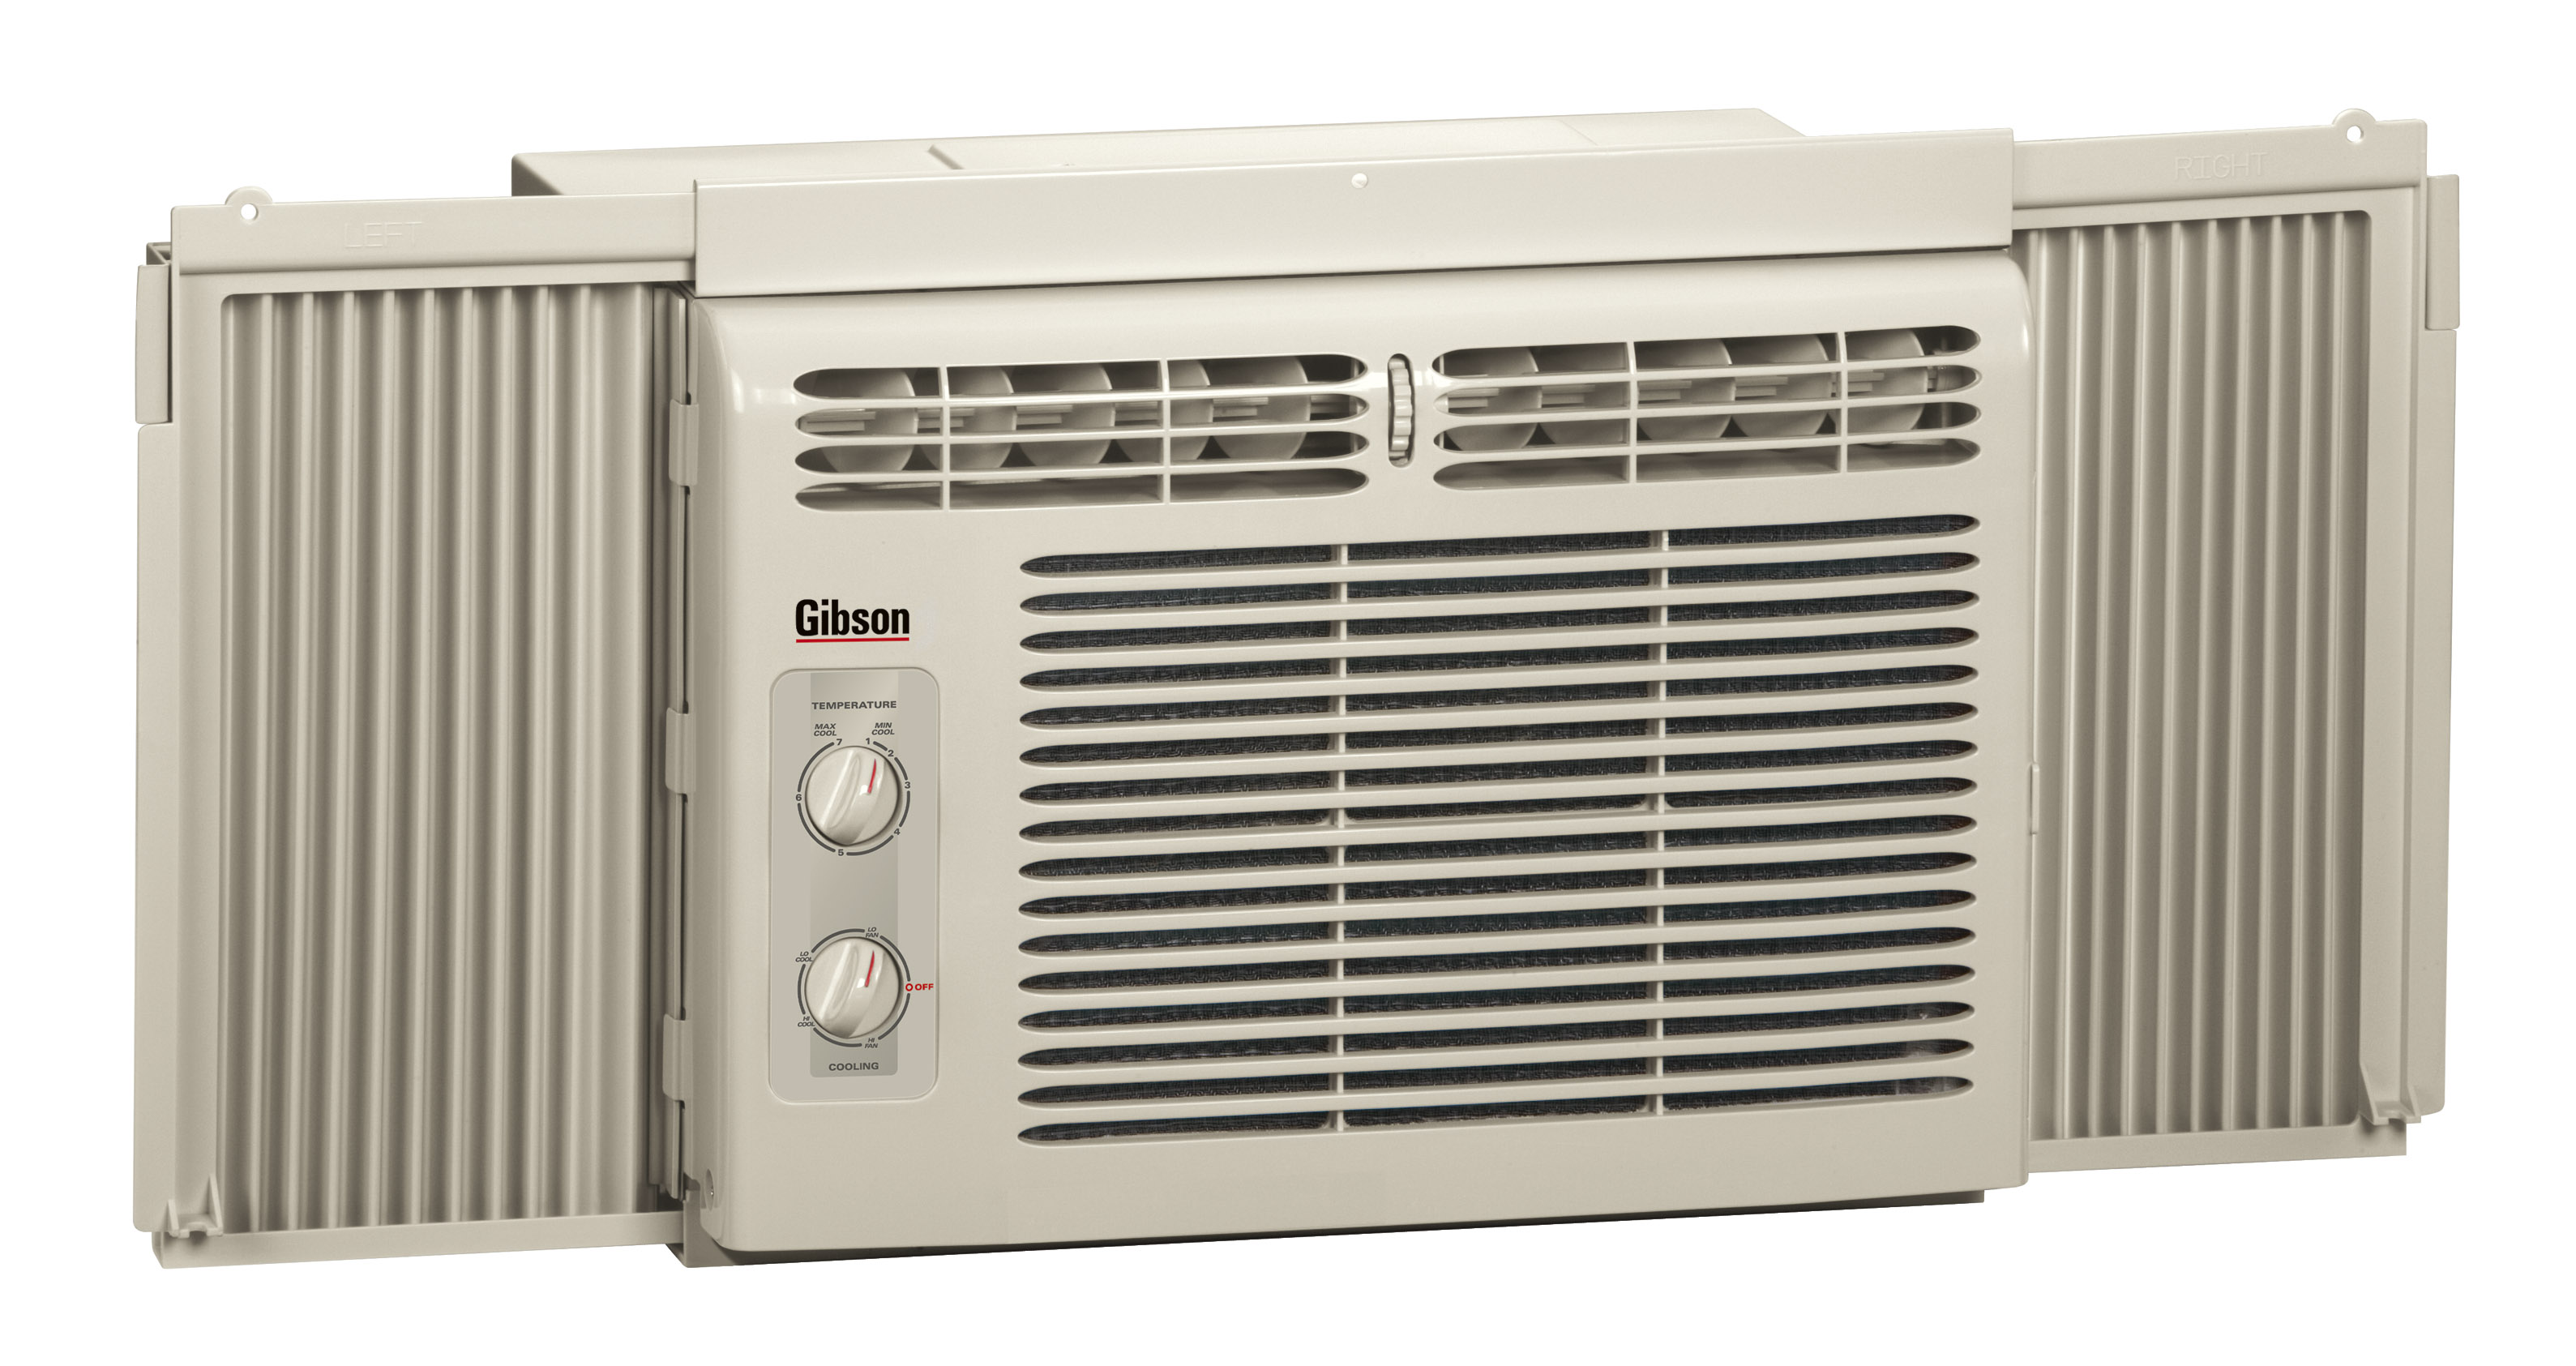 Gibson Air Conditioner